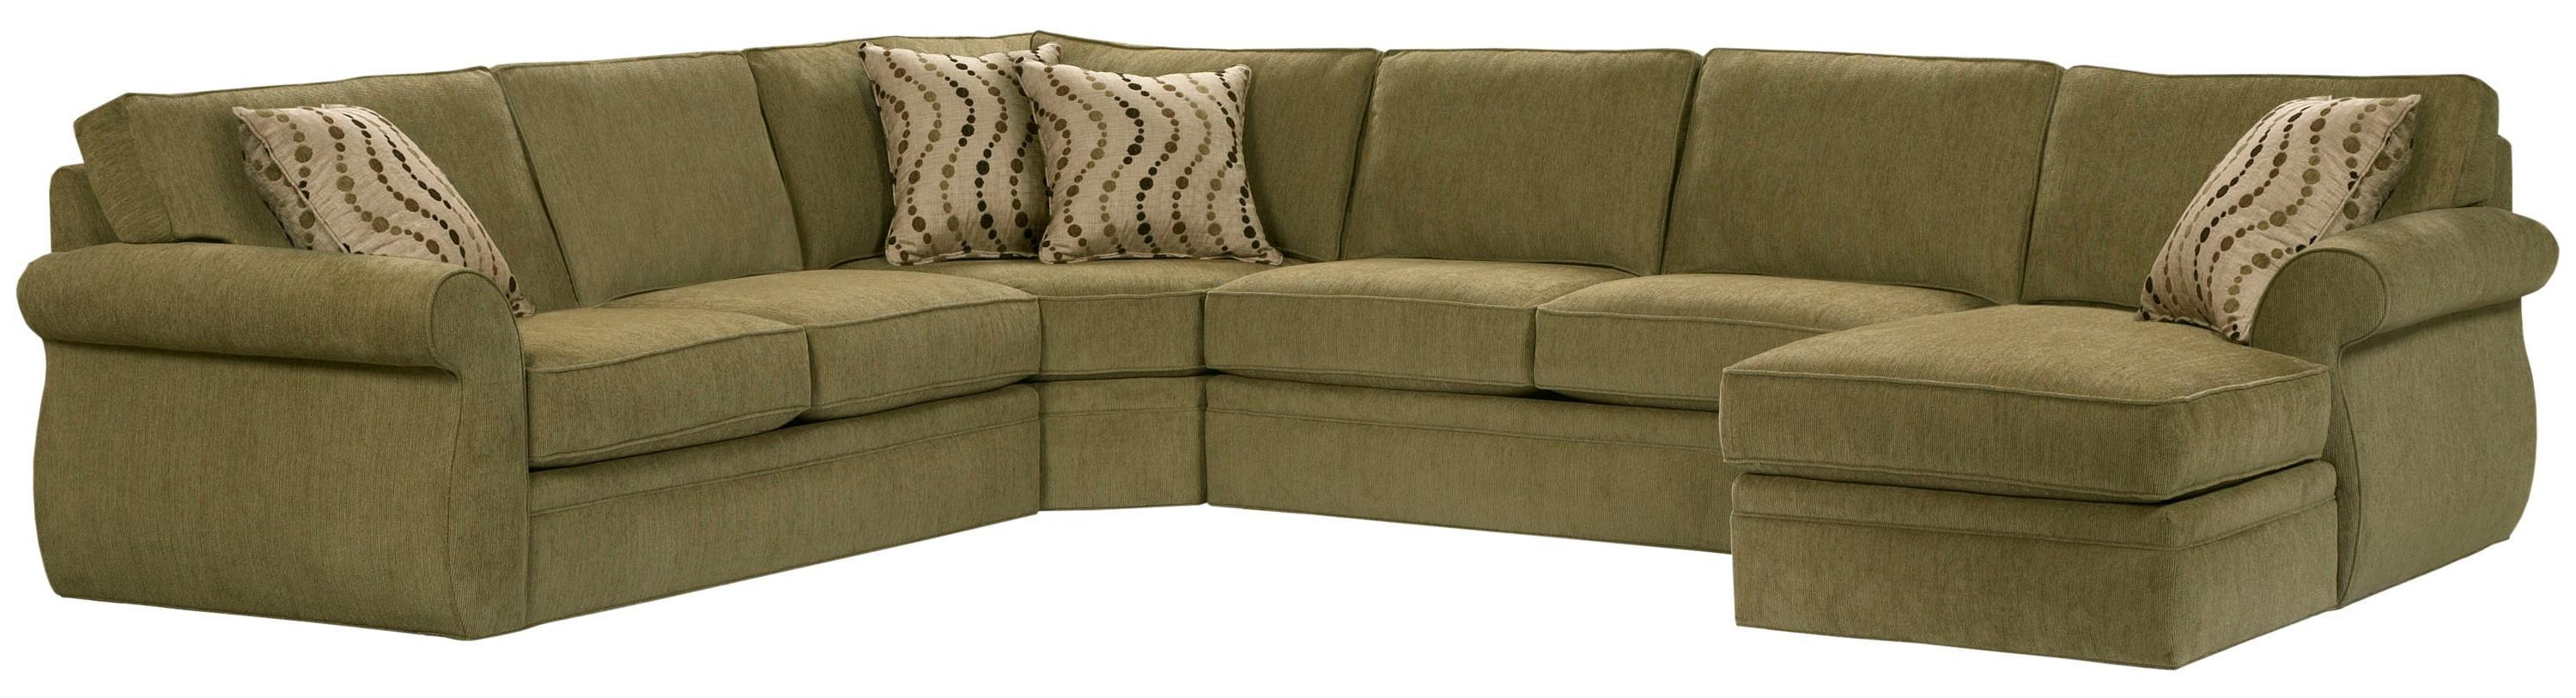 Broyhill Furniture Veronica Right Arm Facing Customizable Chaise For Broyhill Sectional Sofa (View 2 of 15)